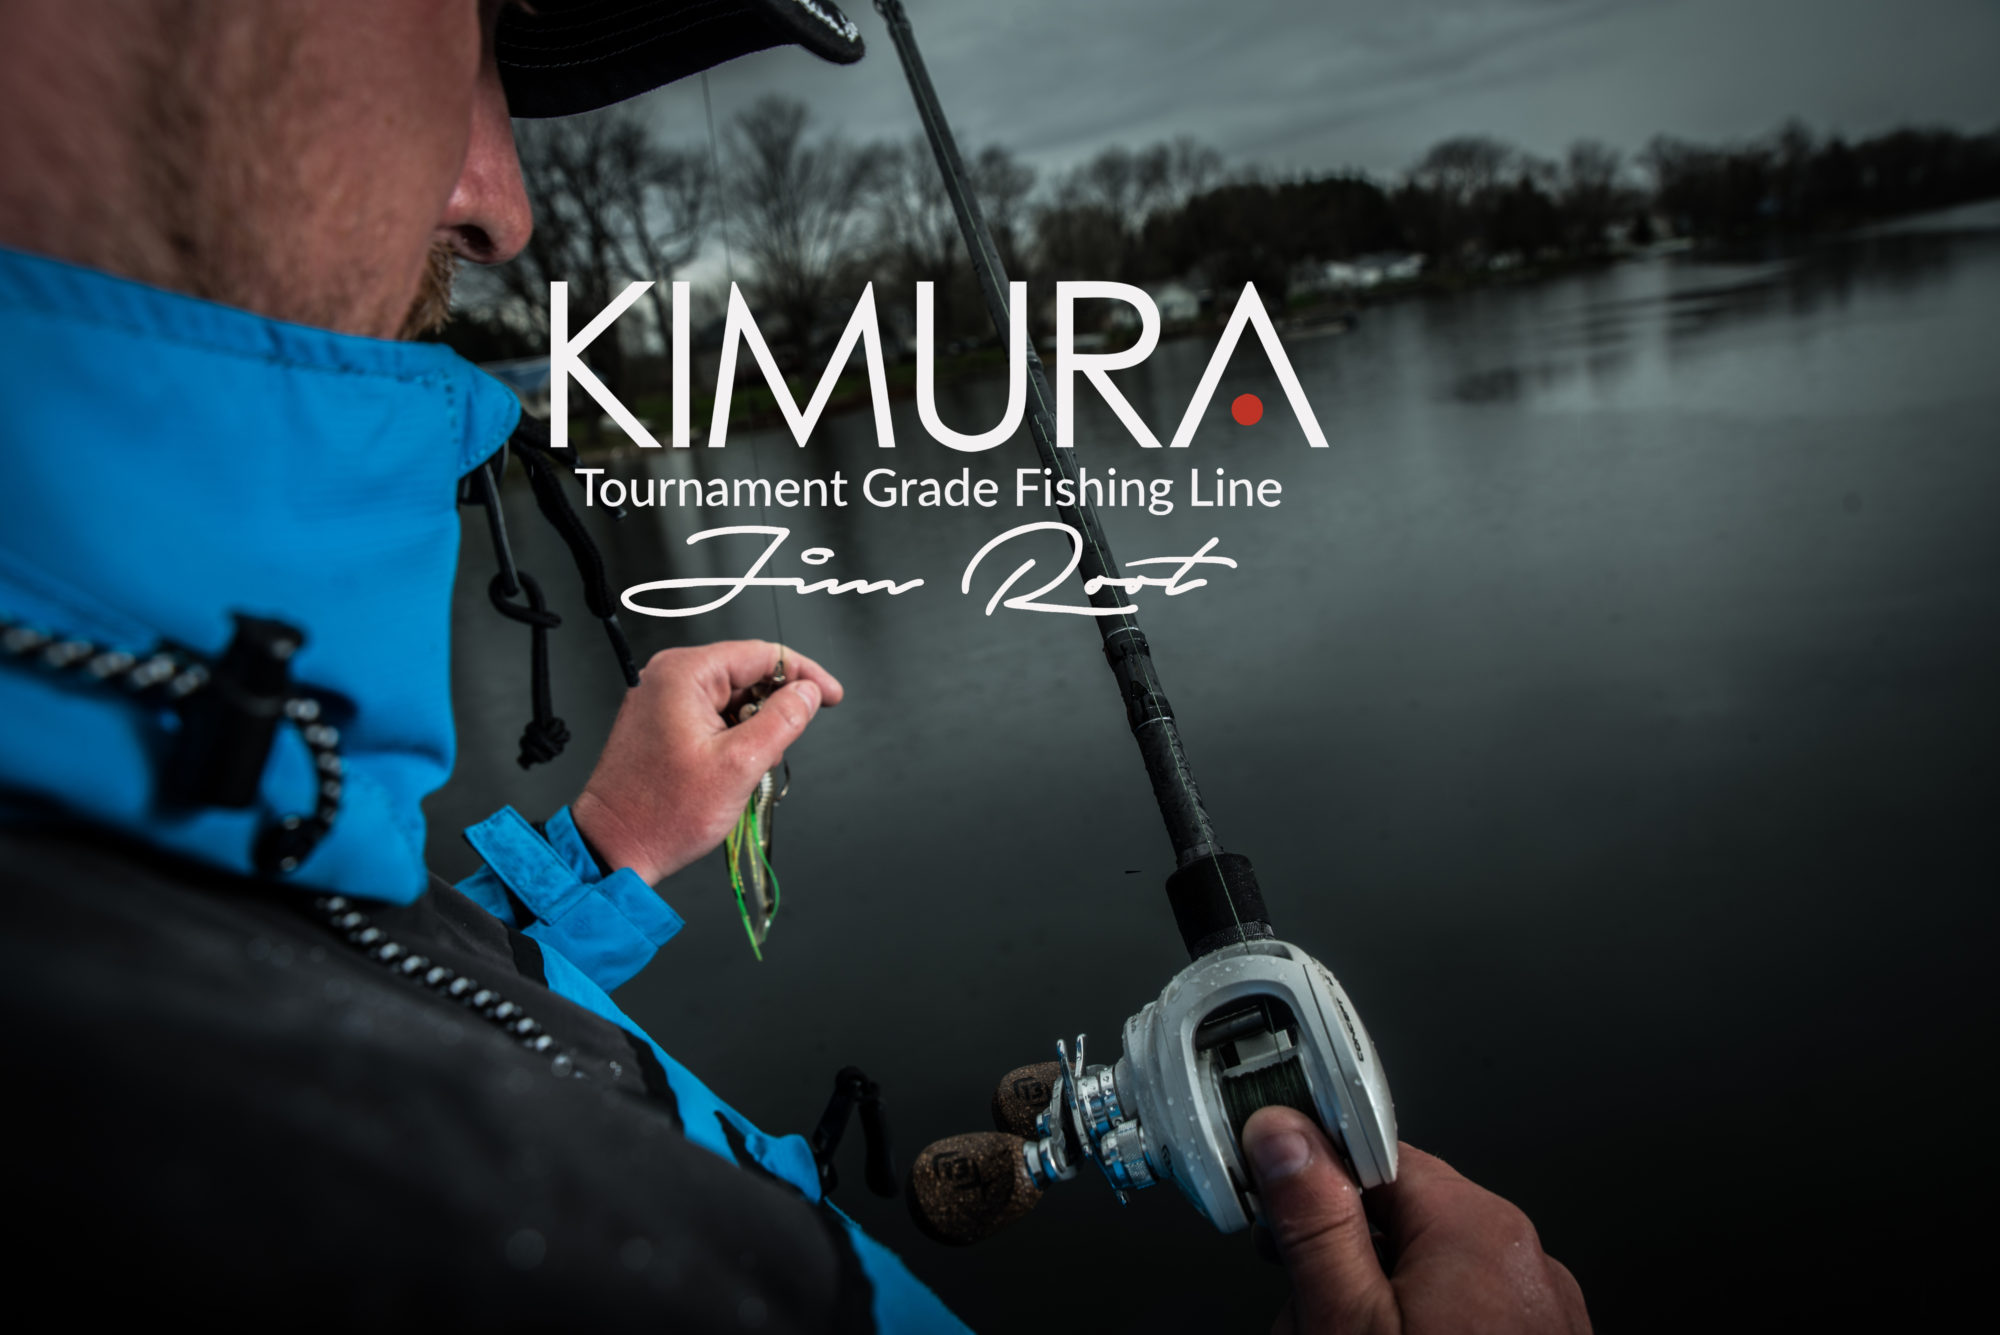 KIMURA fishing line, tournament grade.